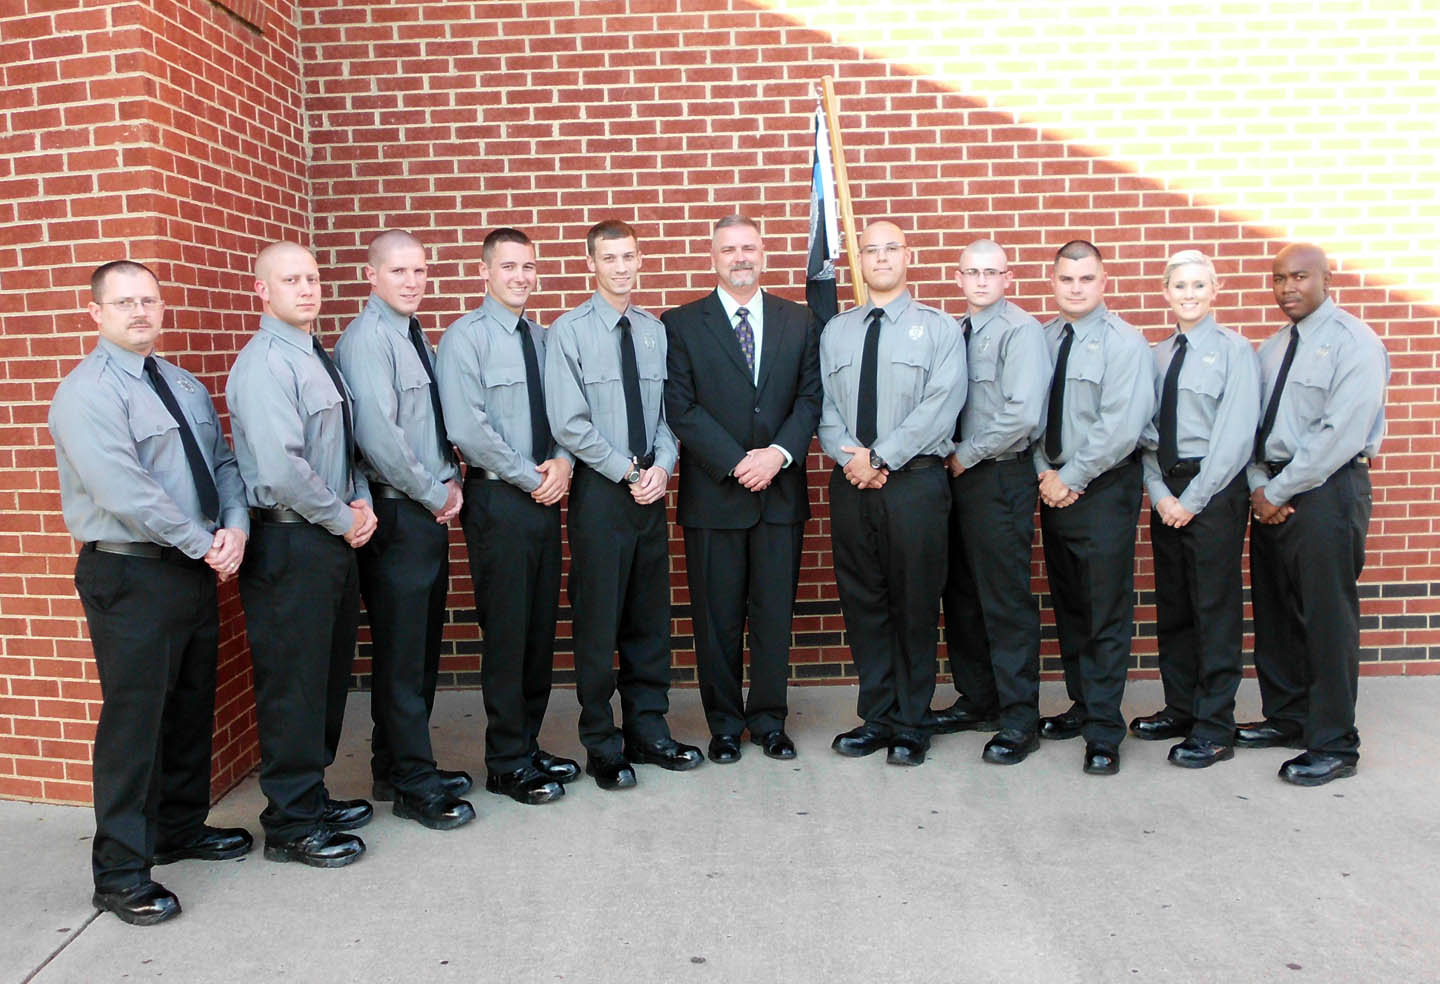 CCCC-Lee graduates 10 in law enforcement